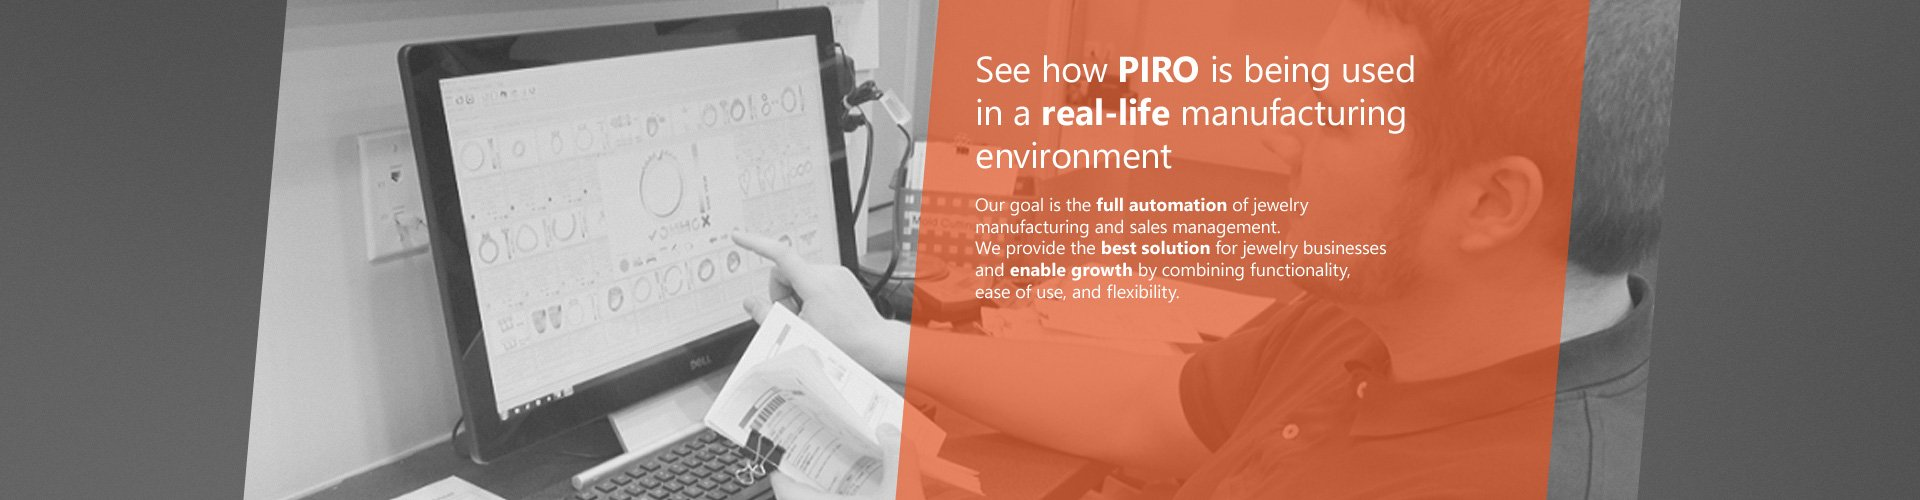 PIRO | Jewelry manufacturing and retail software